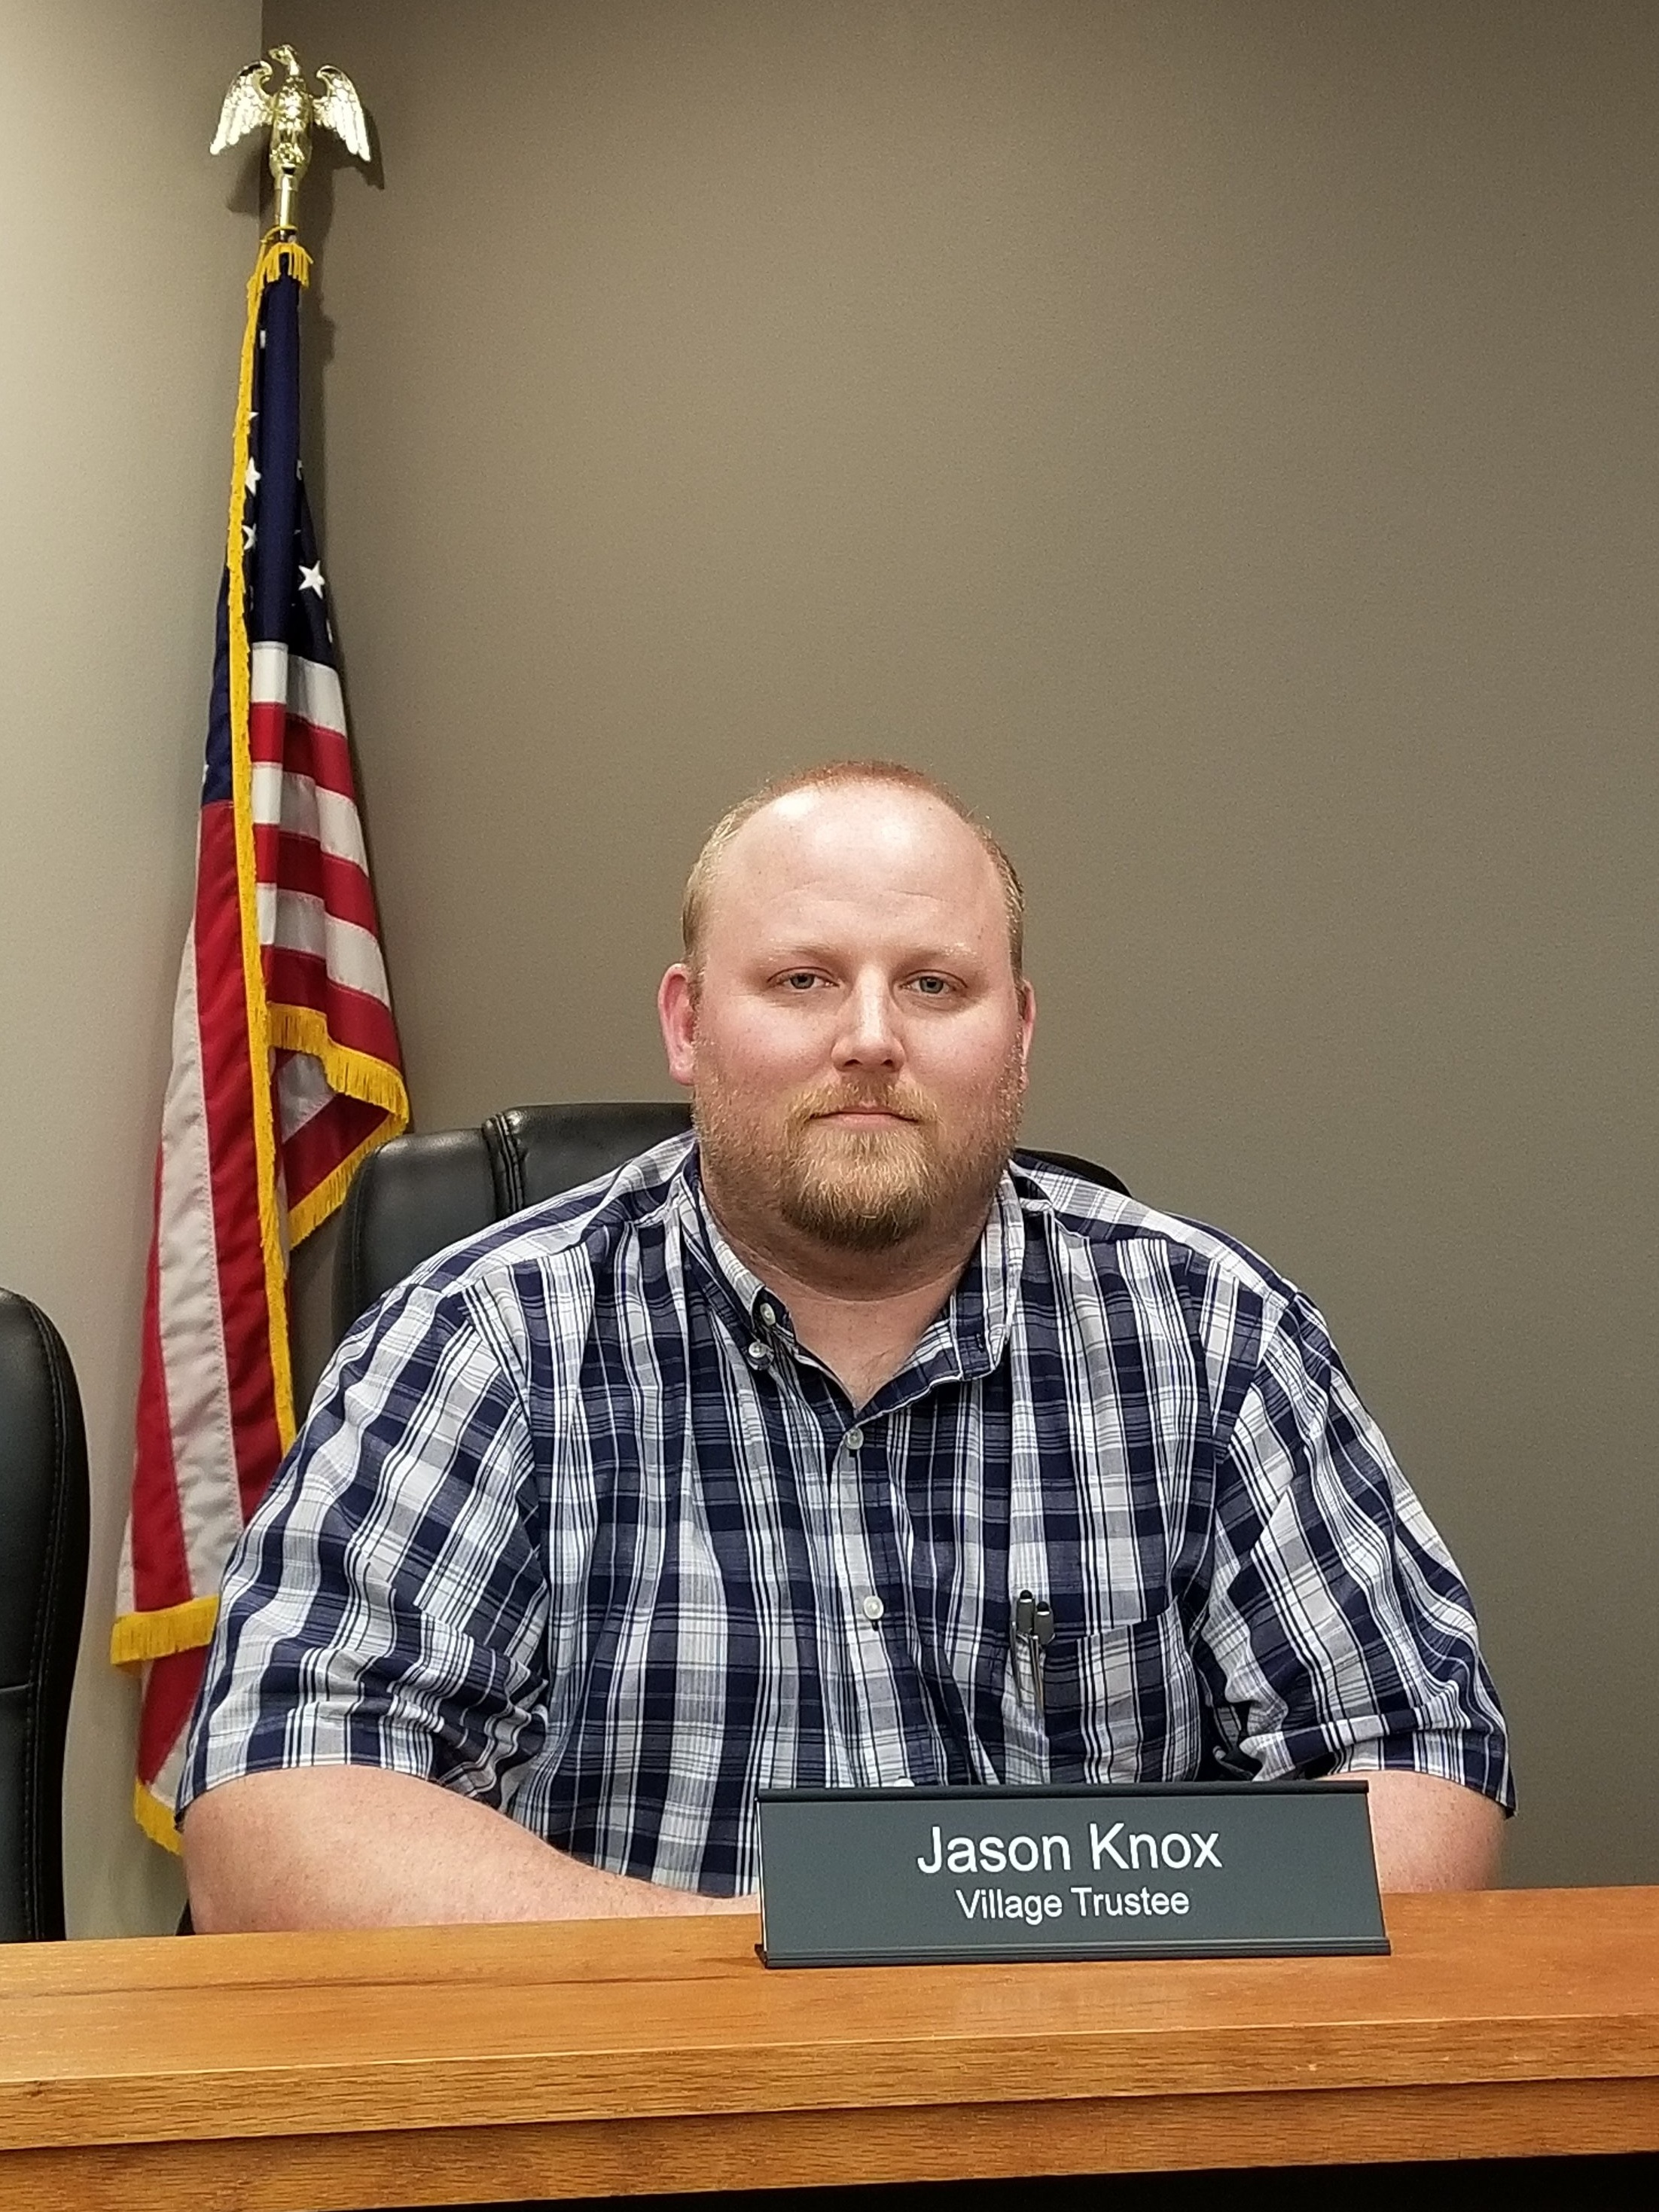 Village Trustee - Jason Knox